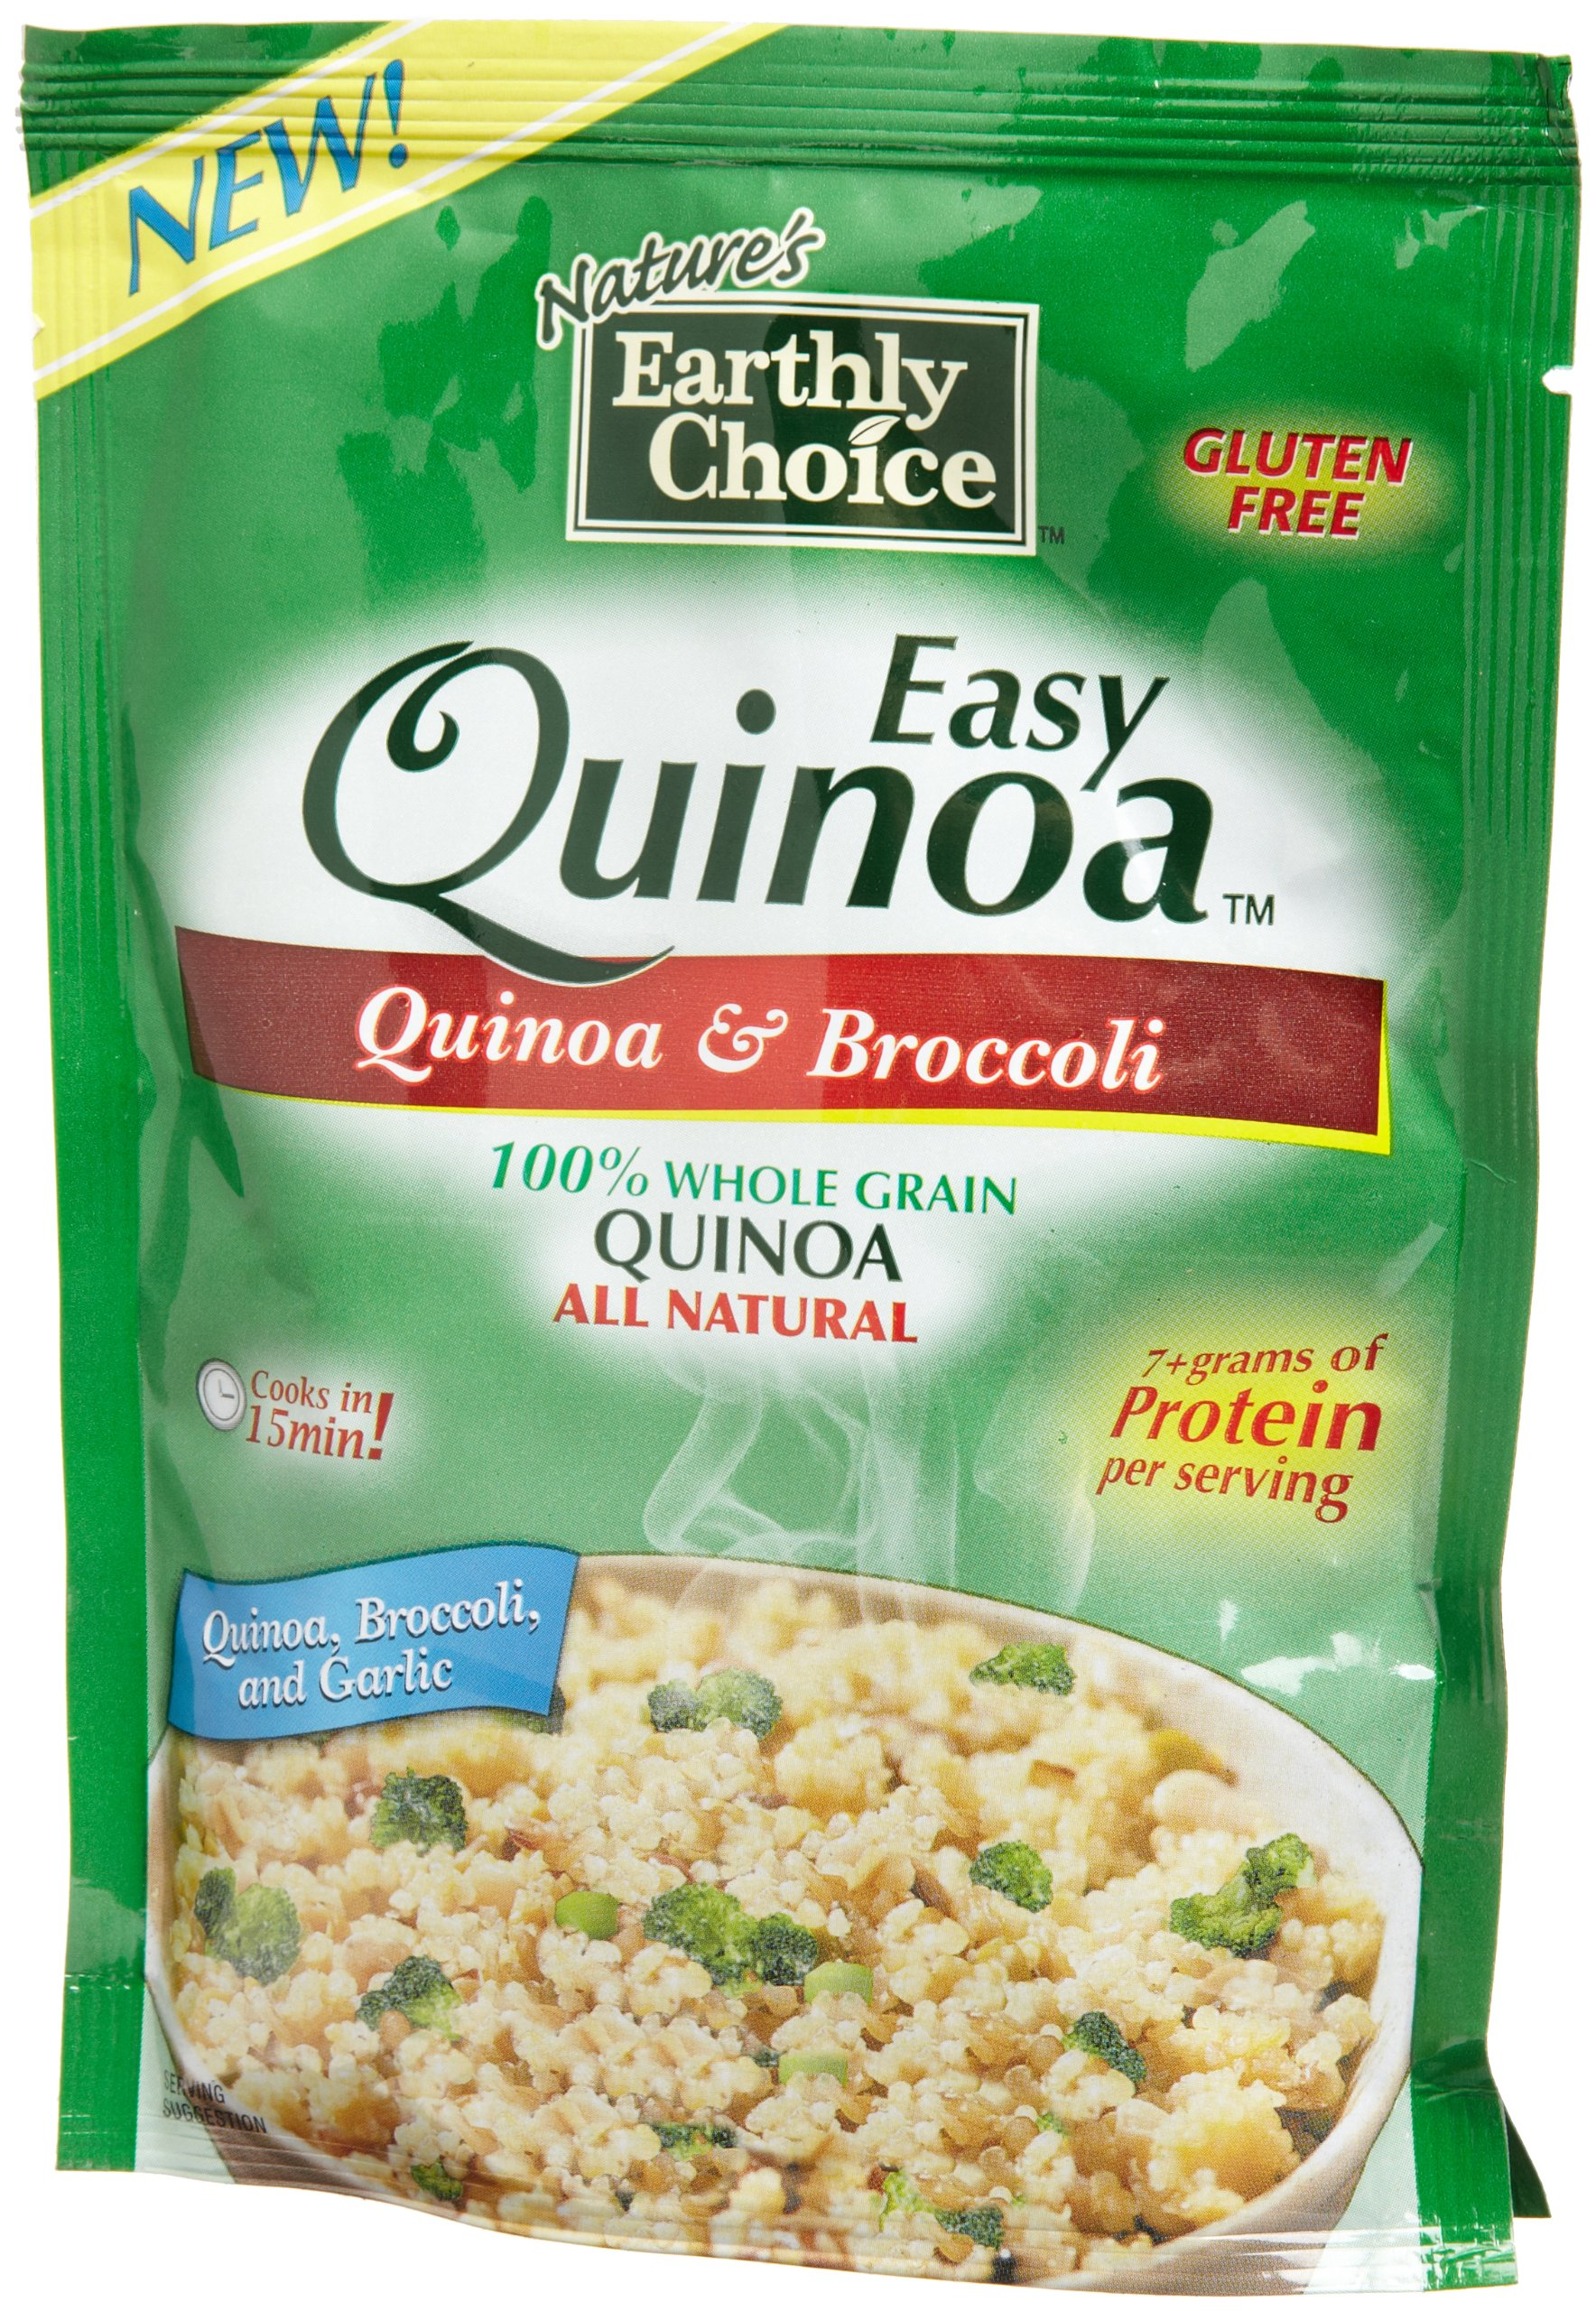 Nature's Earthly Choice Quinoa and Broccoli Pouch, 4.2 Ounce